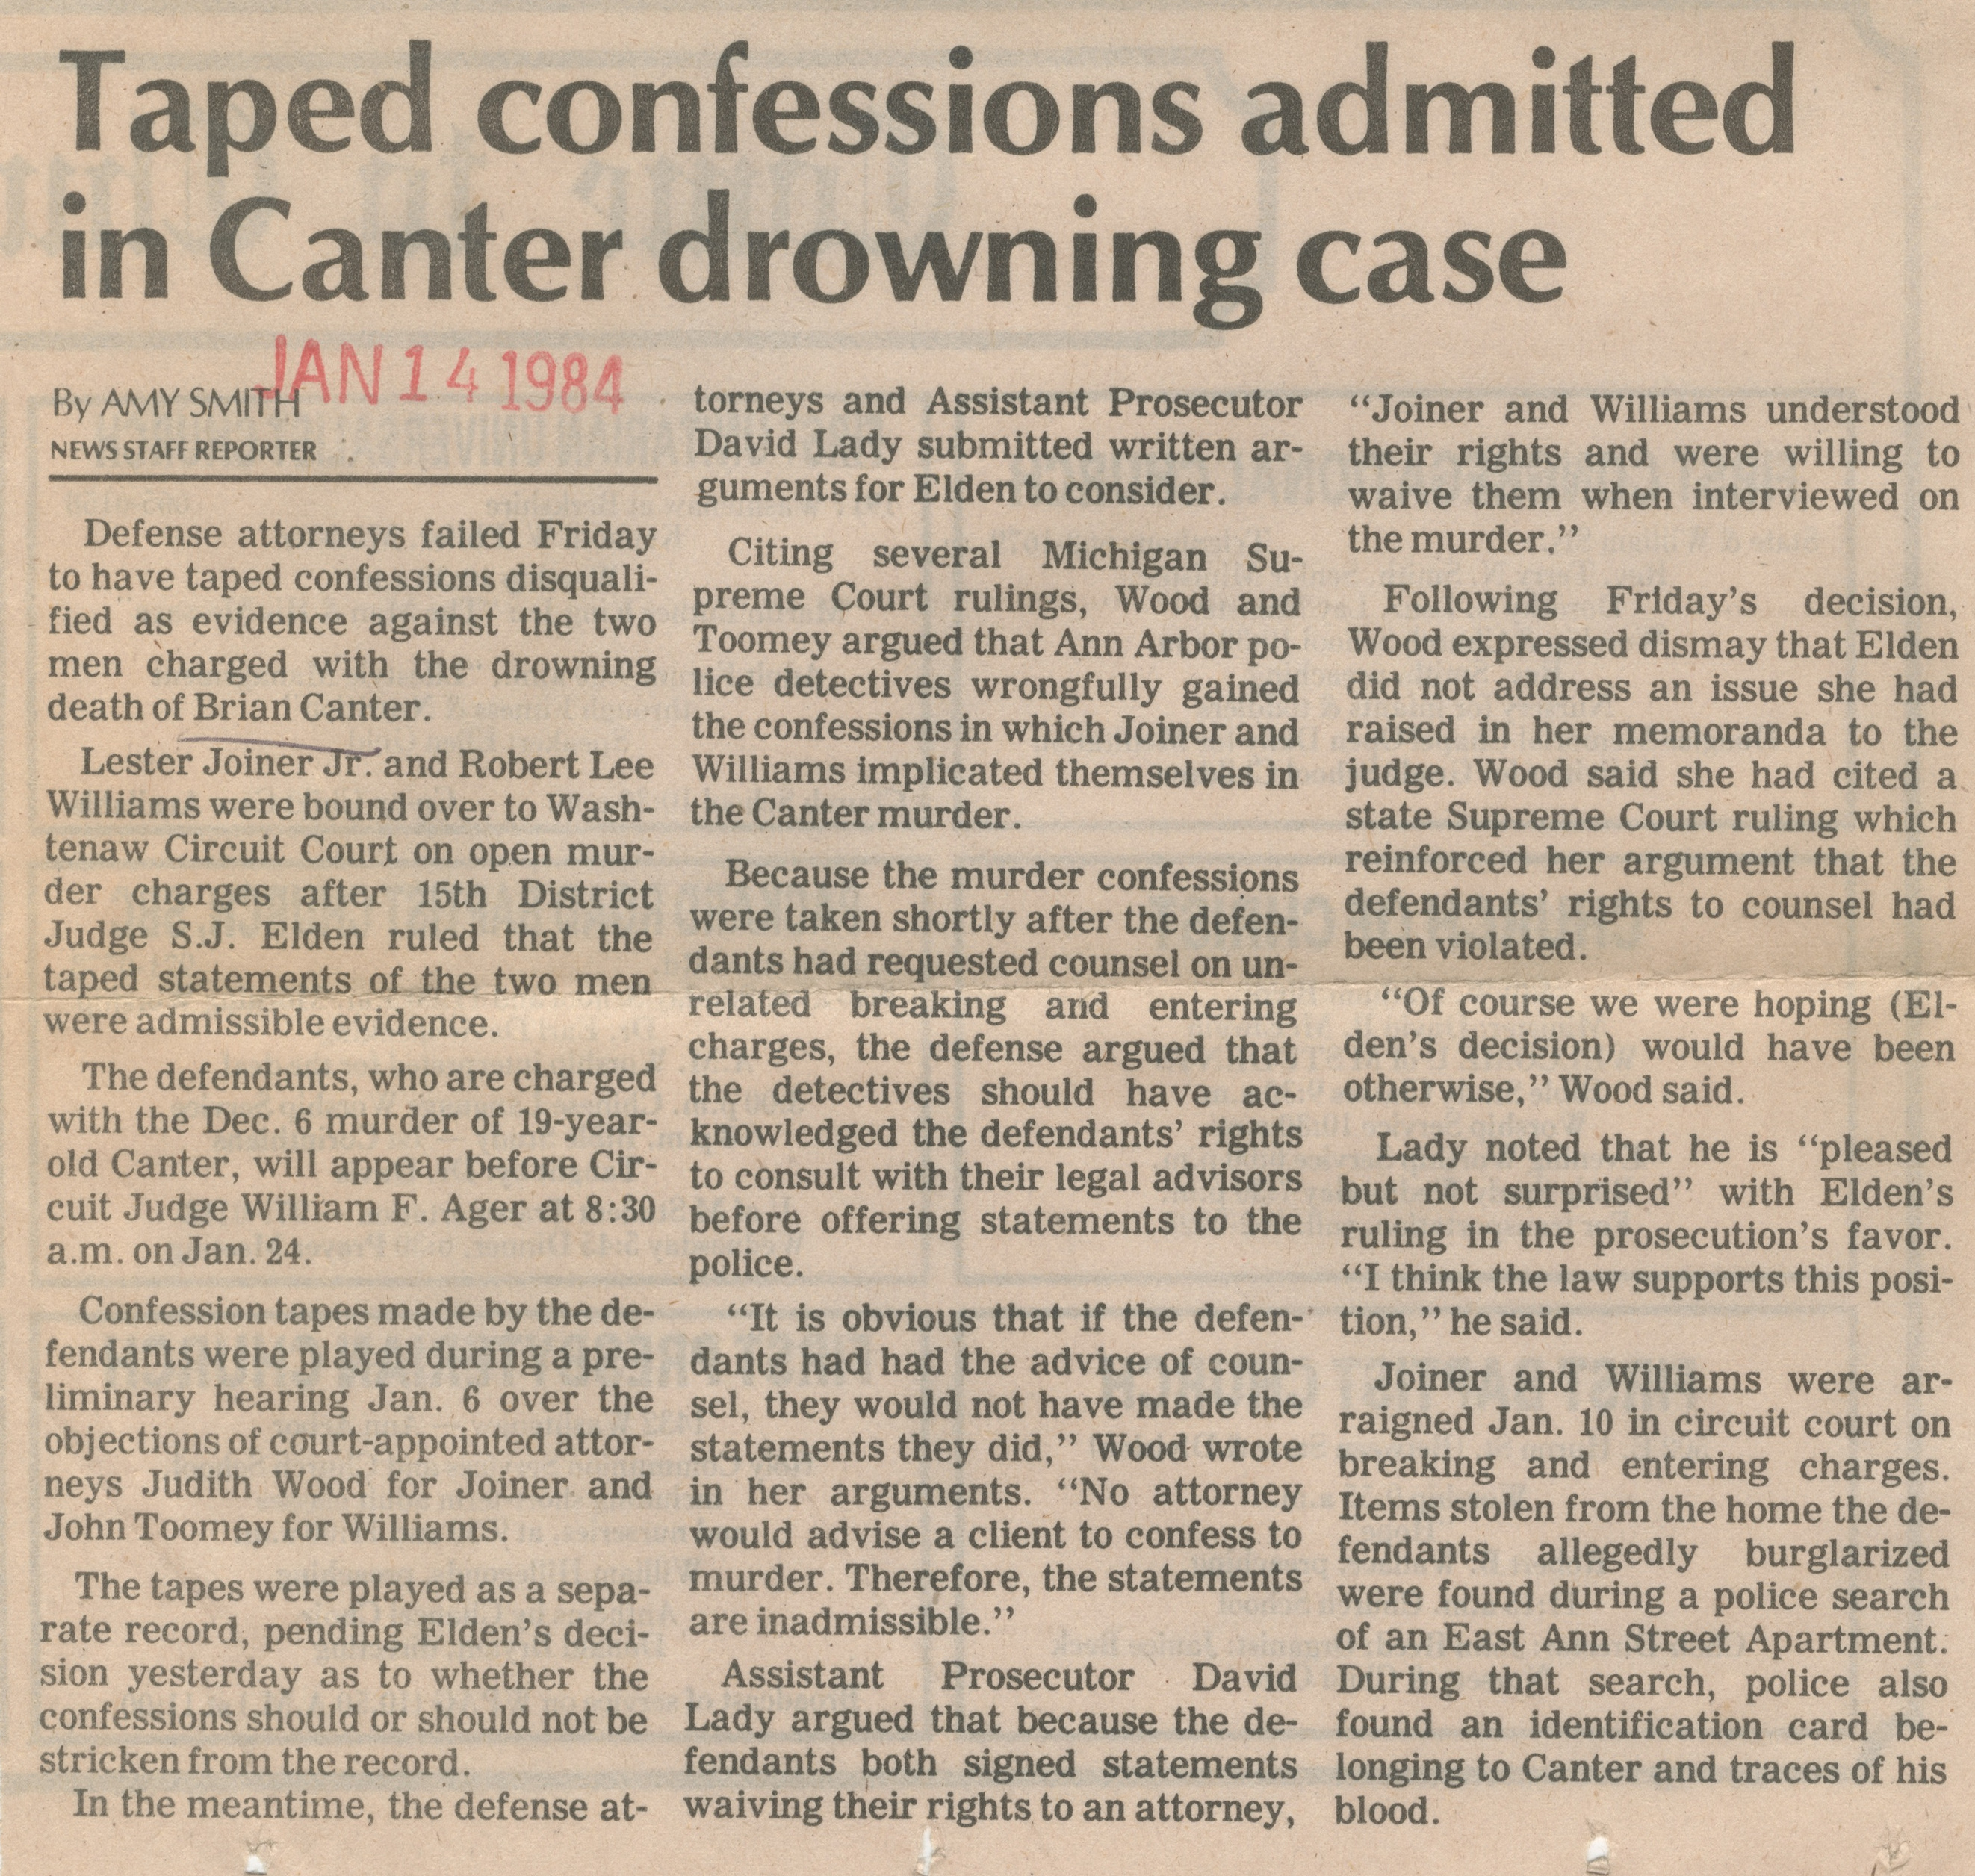 Taped Confessions Admitted In Canter Drowning Case image